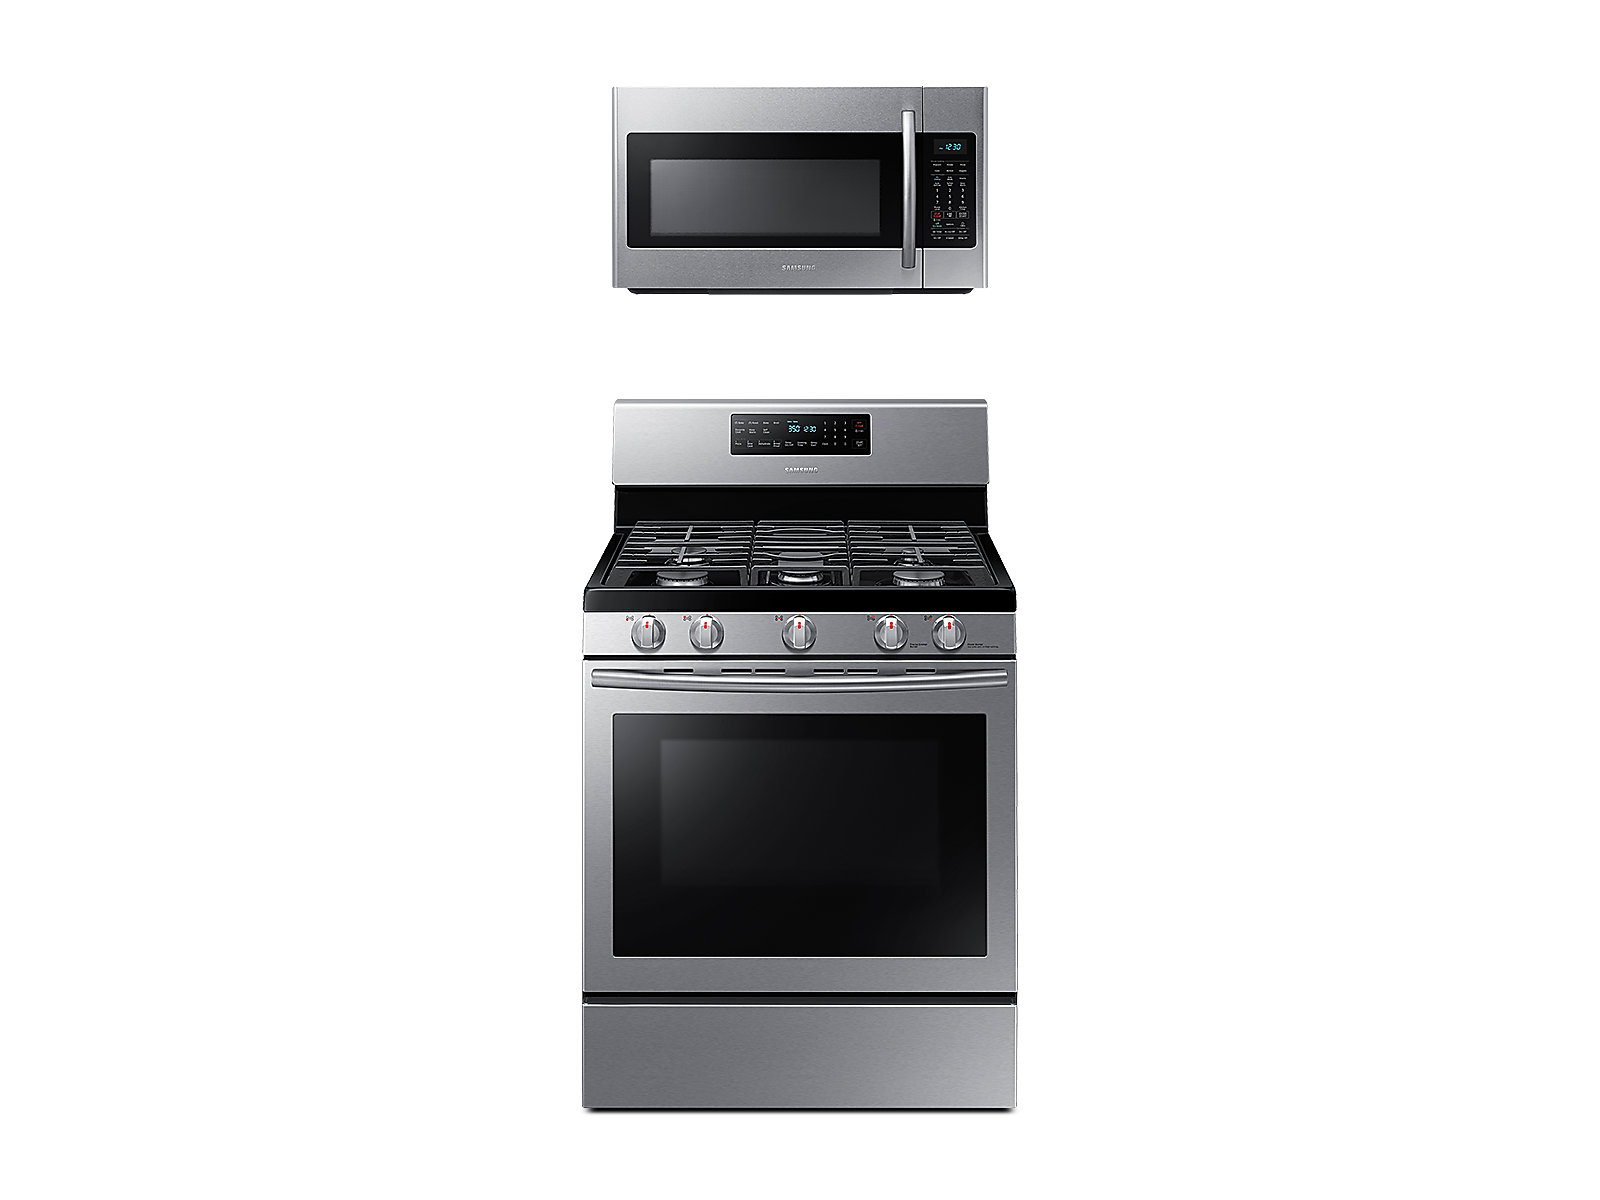 Samsung Freestanding Gas Range with Convection + Over-the-Range Microwave in Stainless Steel(BNDL-1580225821427)